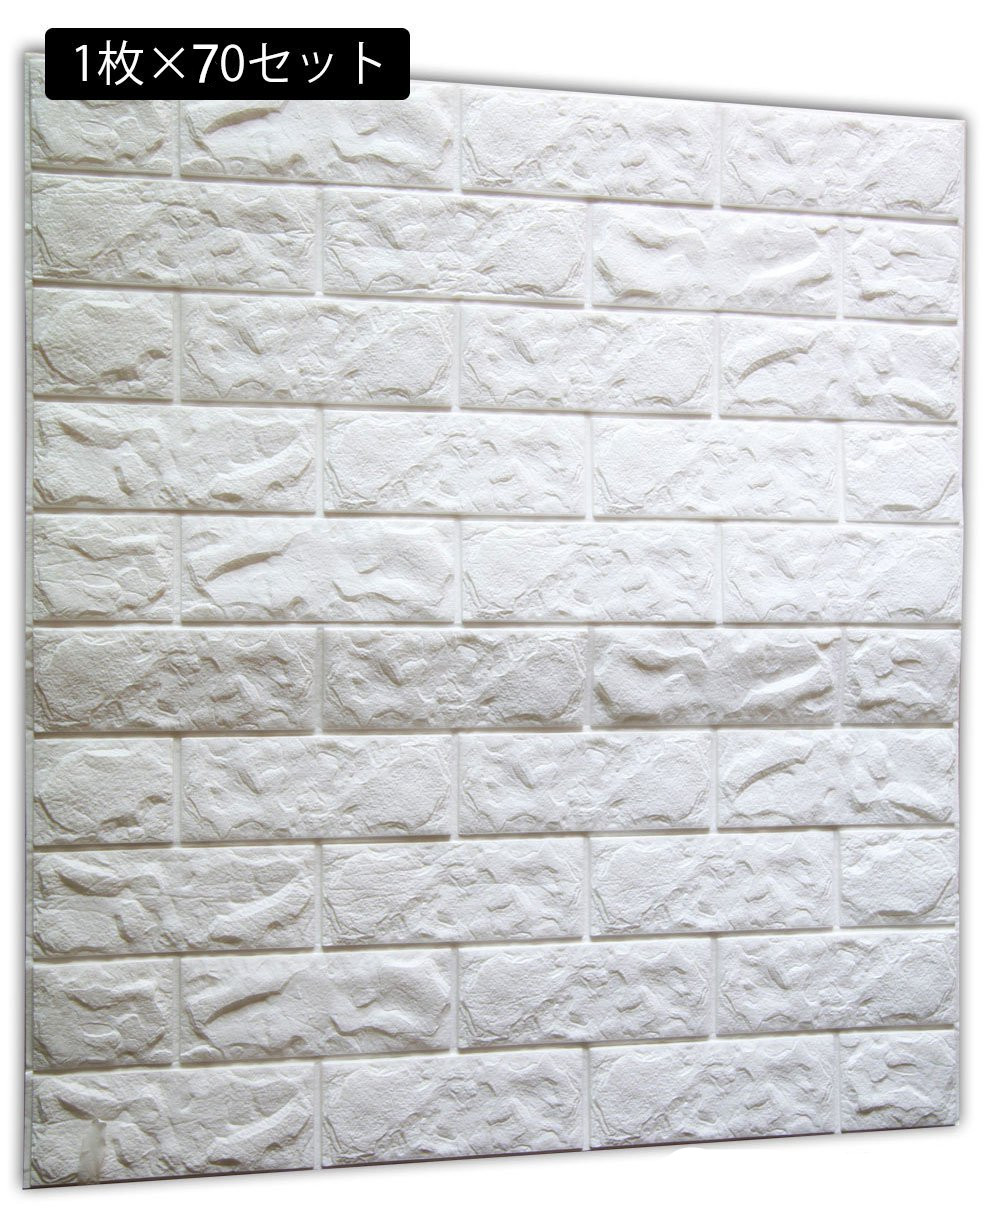 70 pcs PE Foam 3D Wallpaper DIY Wall Stickers Wall Decor Embossed Brick Stone Brick pattern 3D Textured PE Foam Wallpaper Wall brick pattern wallpaper brick retro culture stone wallpaper brick industrial wind loft coffee restaurant background wallpaper